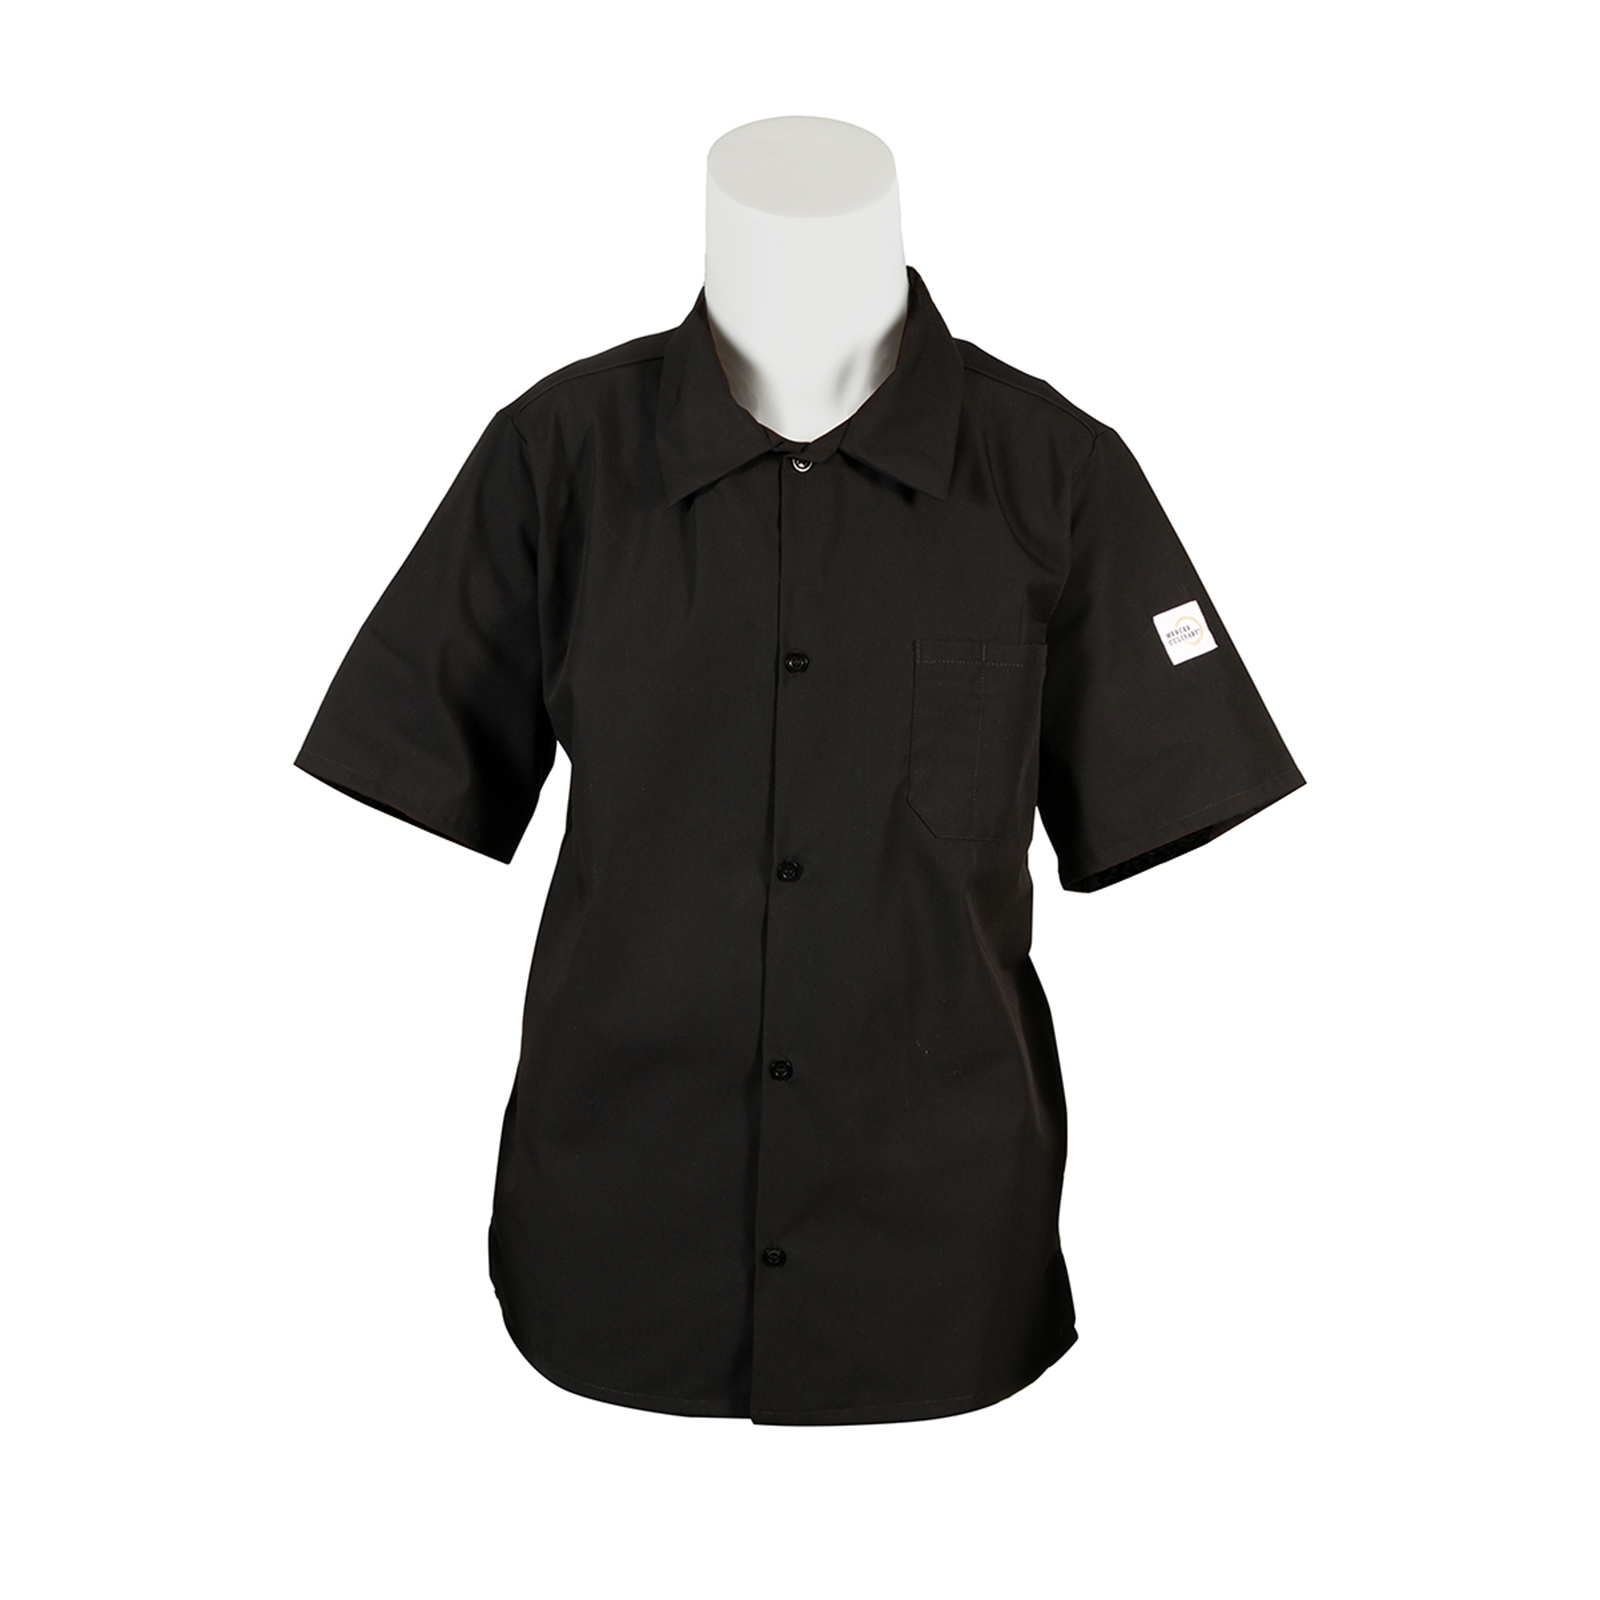 Mercer Culinary M60200BK2X cook's shirt